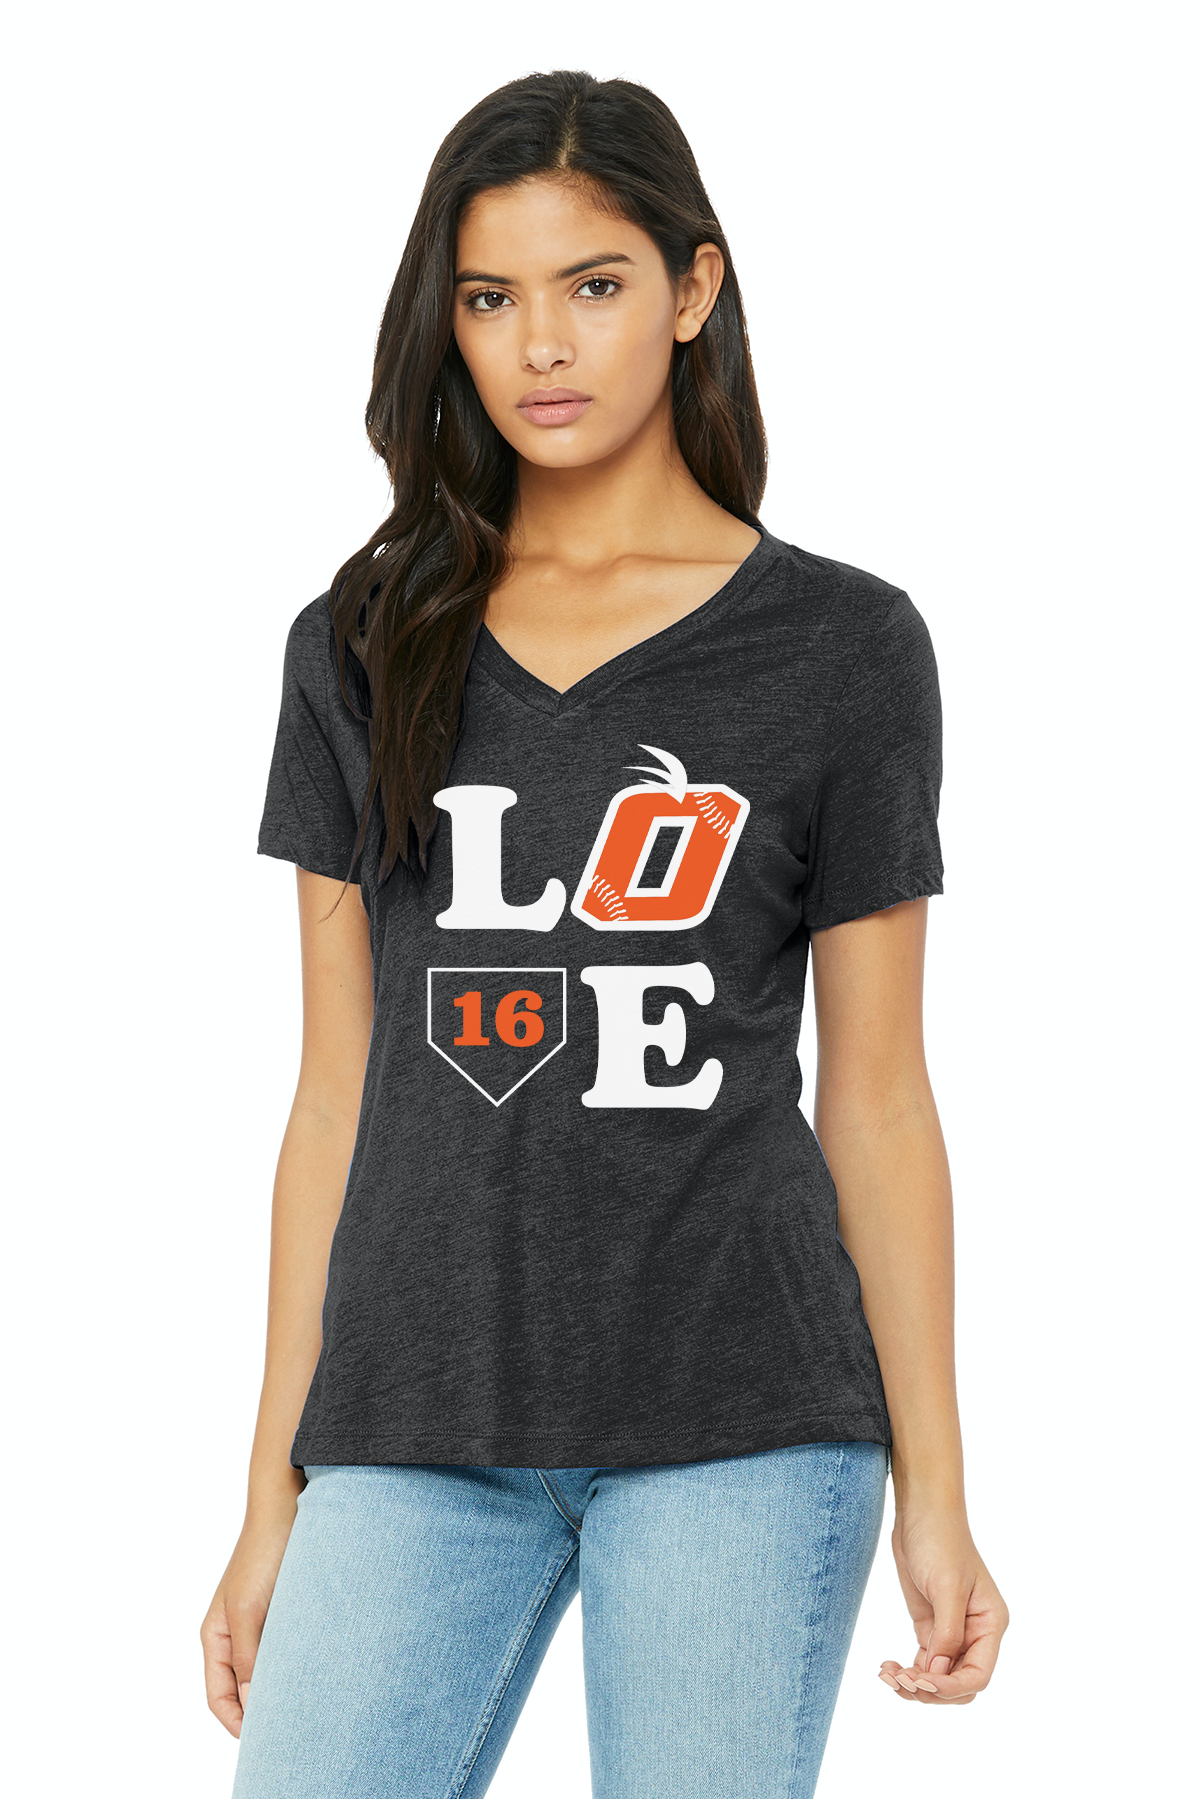 Orange LOVE Bella Canvas Womens Jersey V-Neck Tee (Charcoal-Black Triblend)